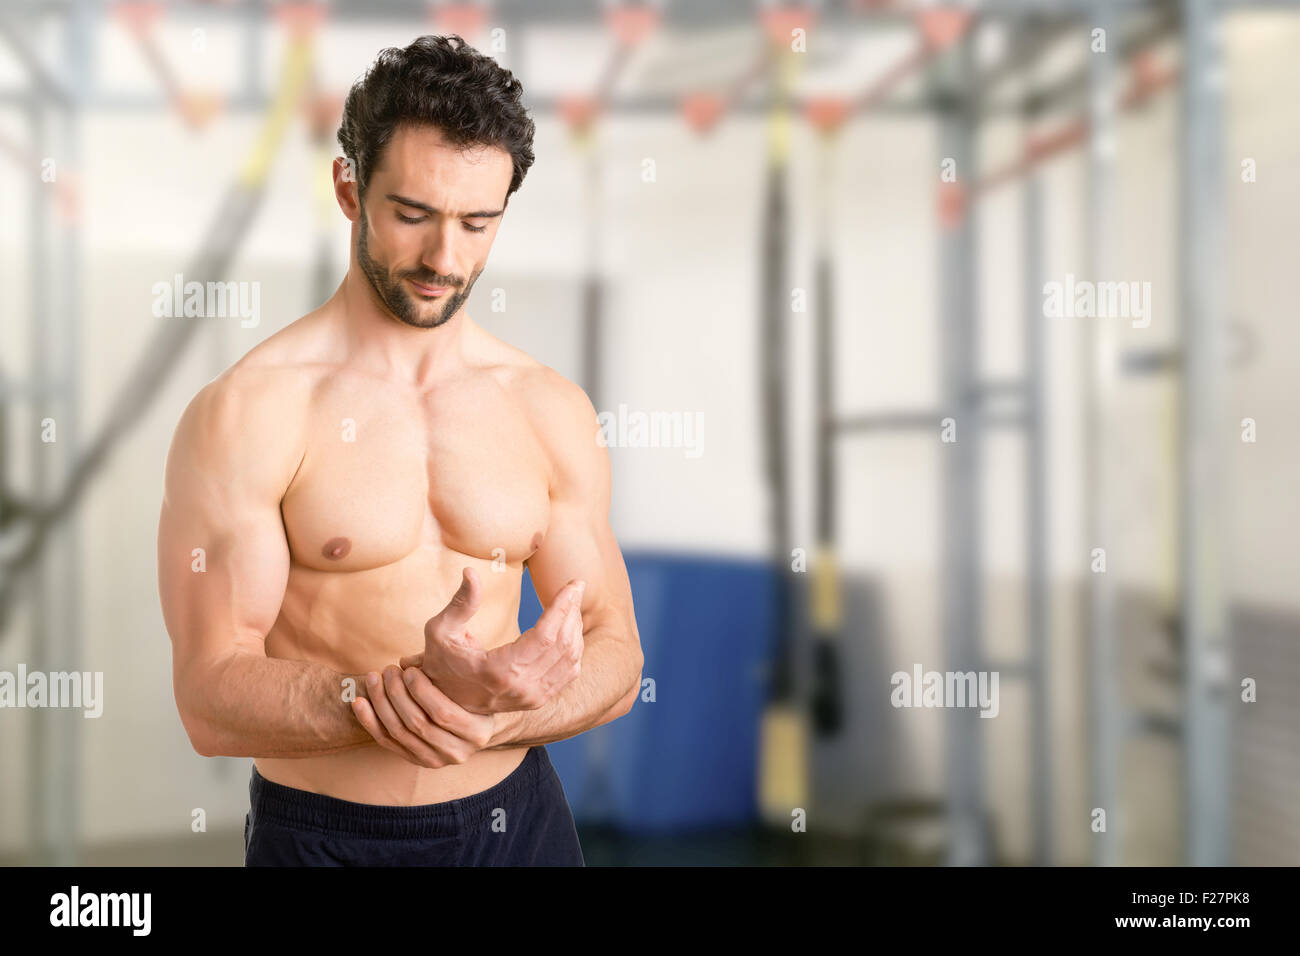 Male with pain in his wrist, isolated in a gym - Stock Image